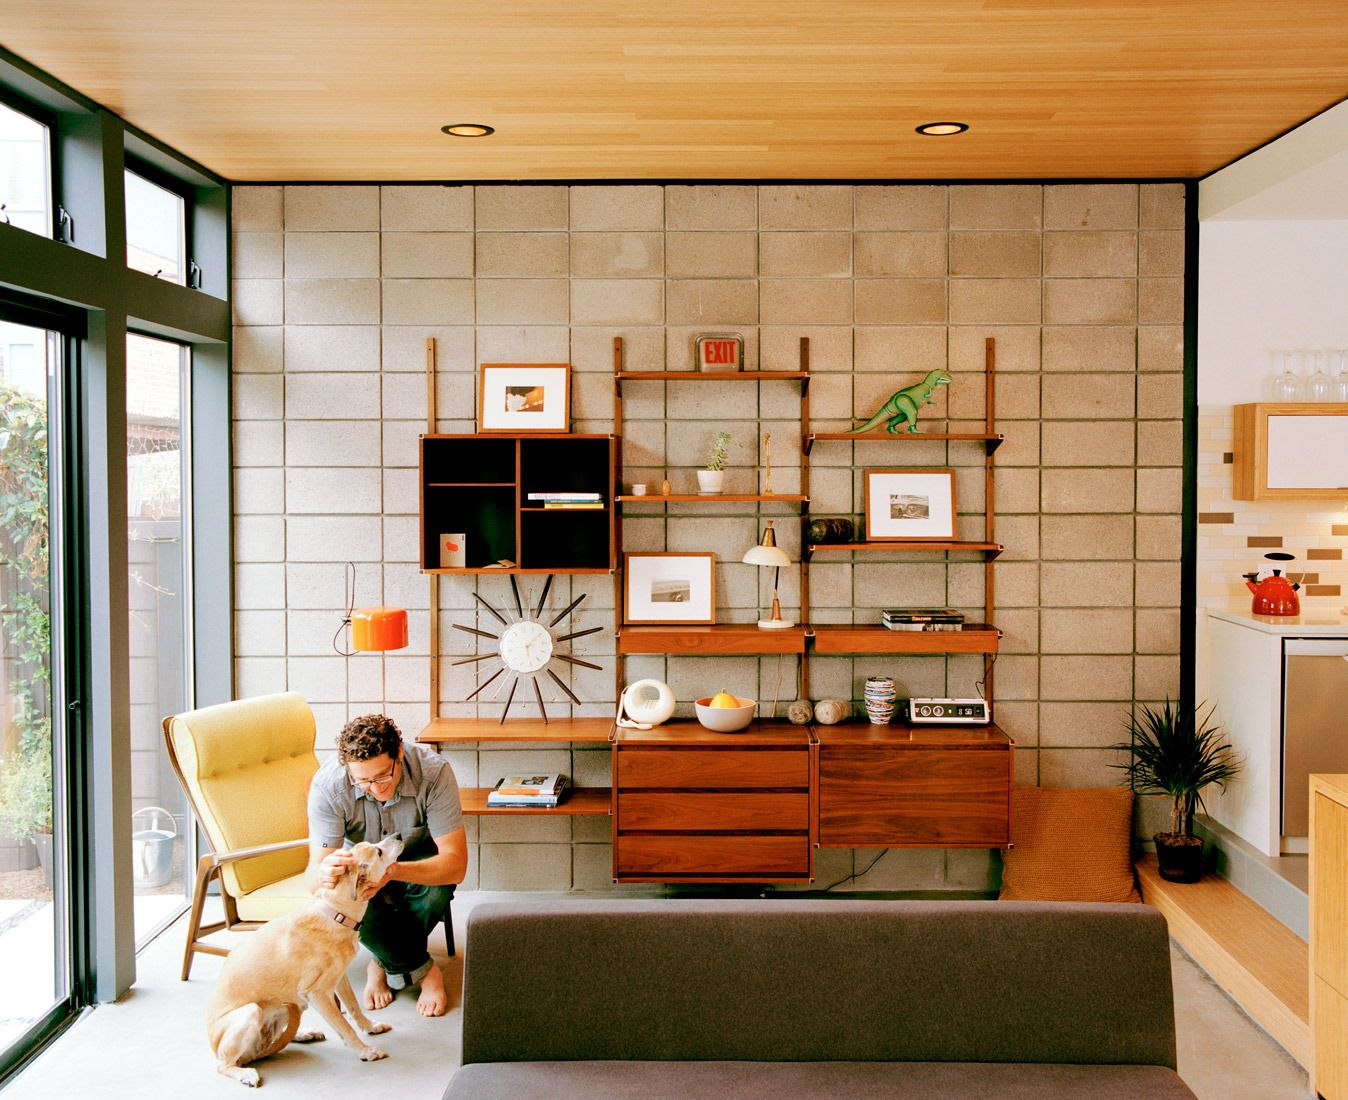 The Residents Of A Prefab House In Emeryville, California, Outfitted Their  Interiors With A Fleet Of Vintage Furniture Finds. Photo By: Jake Stangel